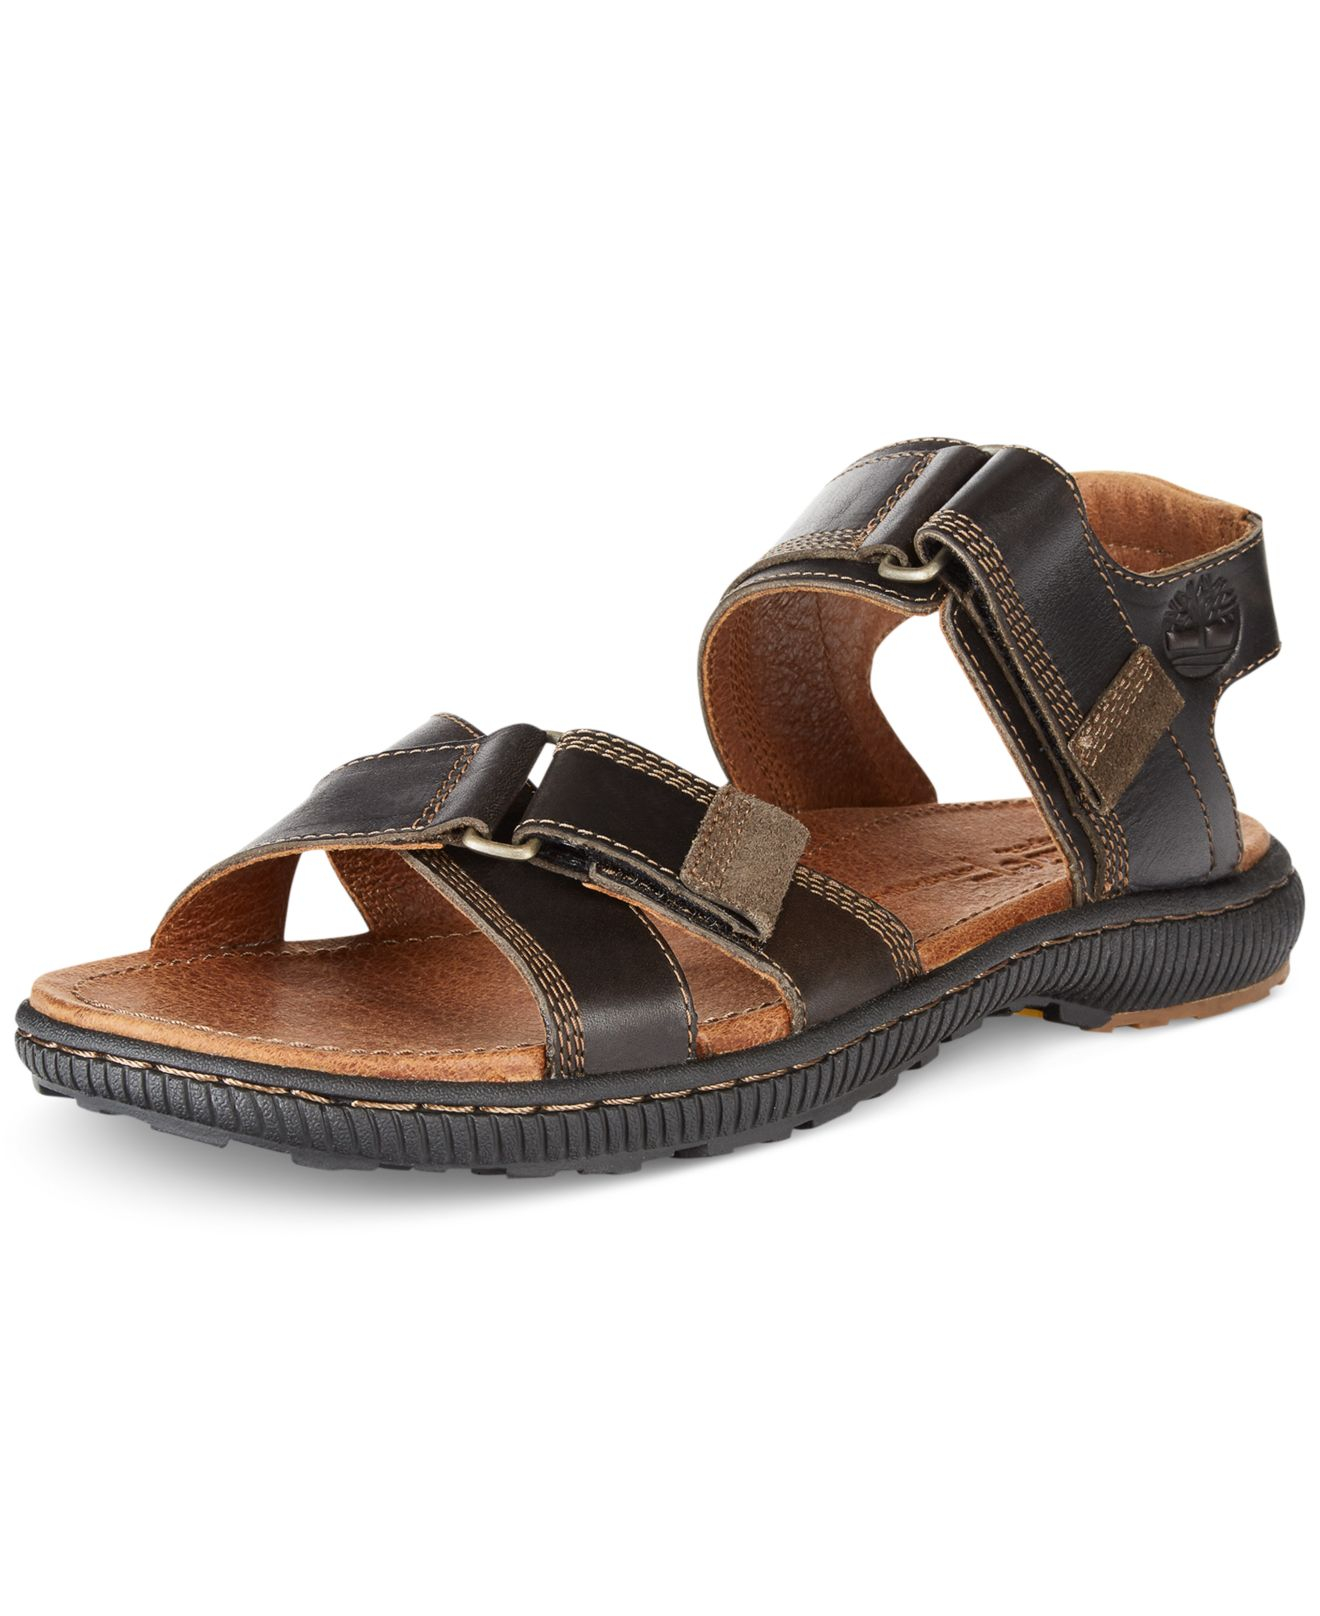 timberland earthkeepers hollbrook sandals in brown for men. Black Bedroom Furniture Sets. Home Design Ideas